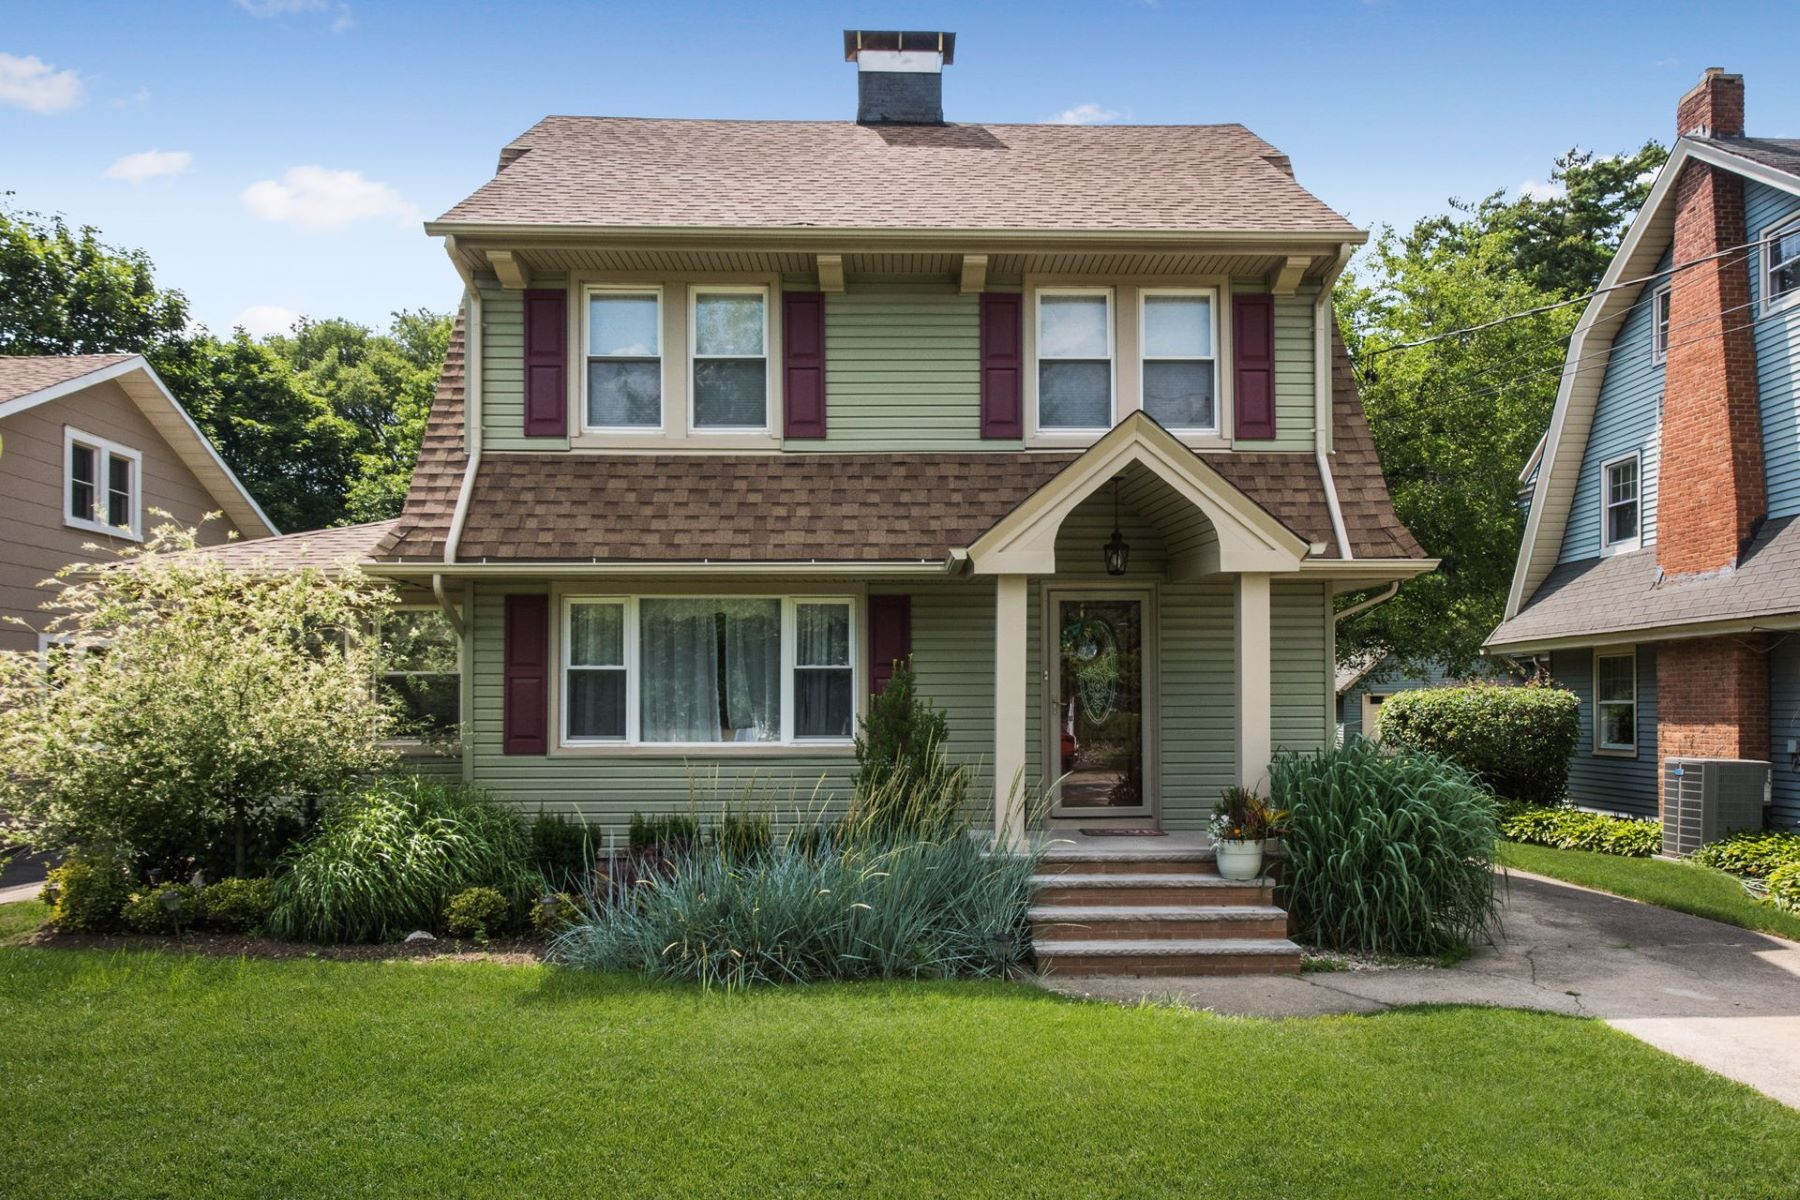 Single Family Homes for Sale at Baldwin 2630 Harrison Ave Baldwin, New York 11510 United States